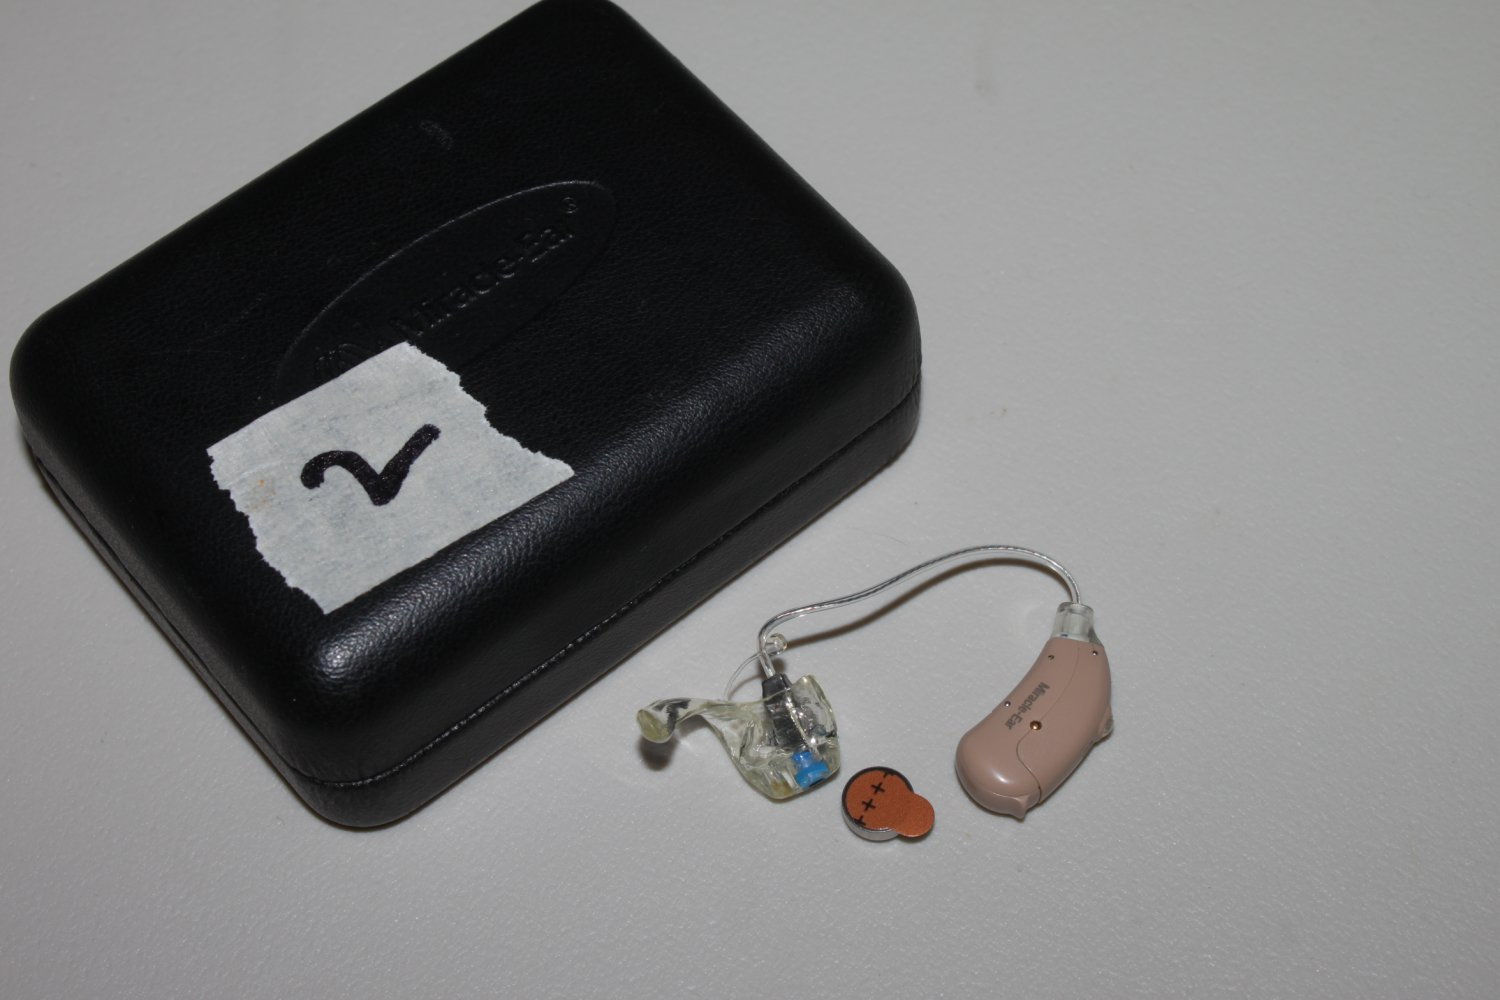 1 Miracle Ear Me Ric Hearing Aid With Fresh Battery And